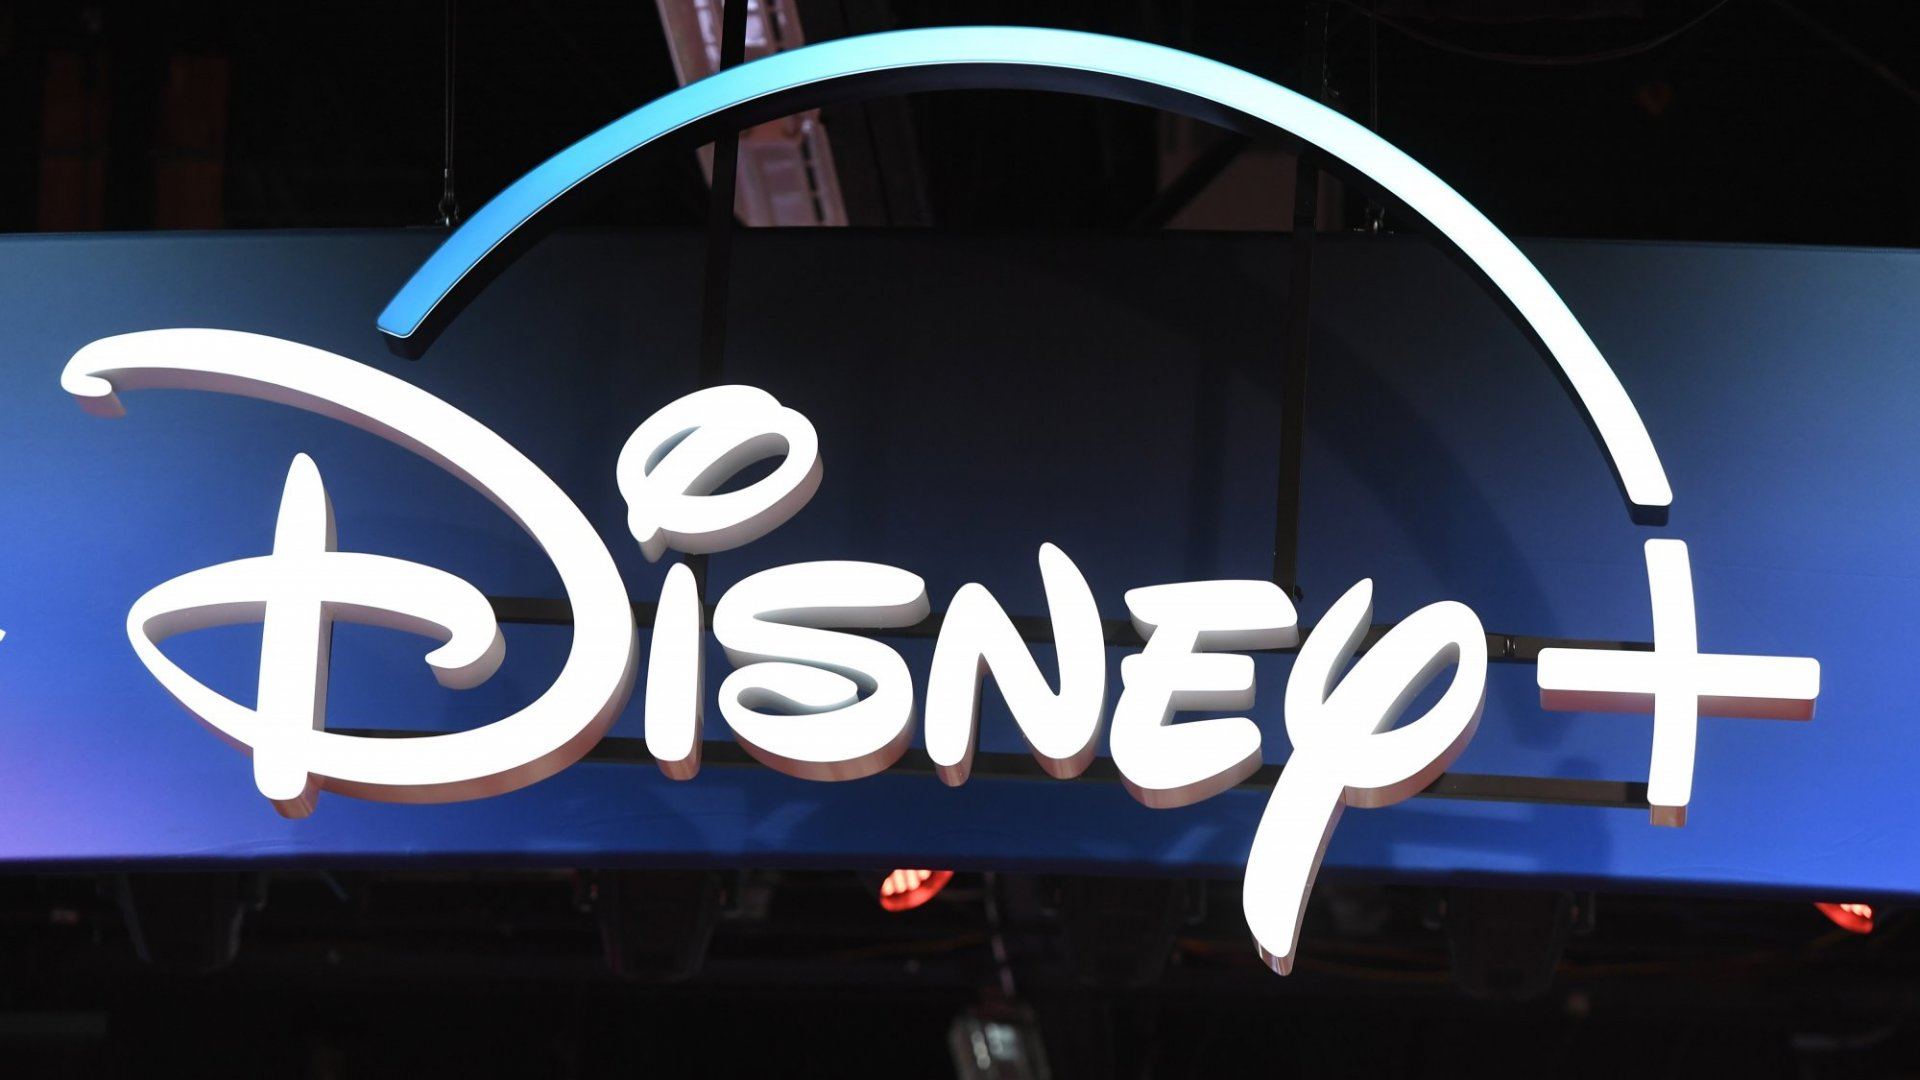 Here's How to Get Disney+ Free for One Year